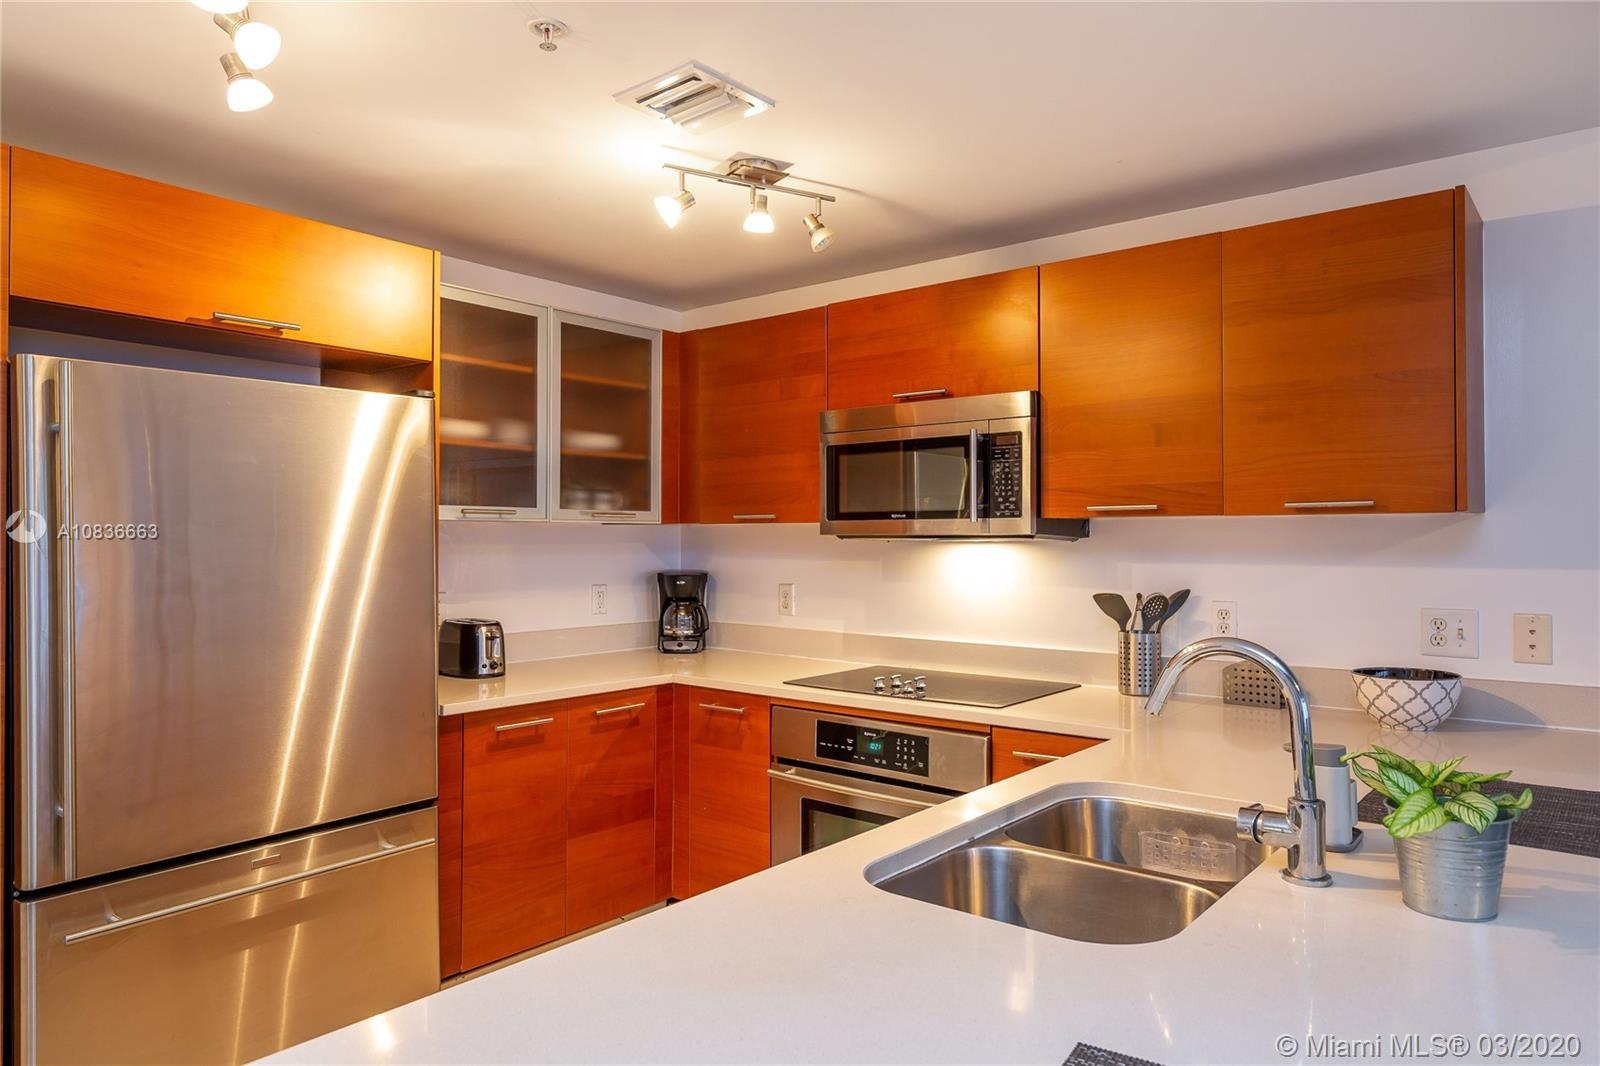 AMAZING UNIT FOR SALE IN THE HOTTEST NEIGHBORHOOD IN MIAMI. FULLY FURNISHED. 1 BEDROOM AND 1 FULL BA